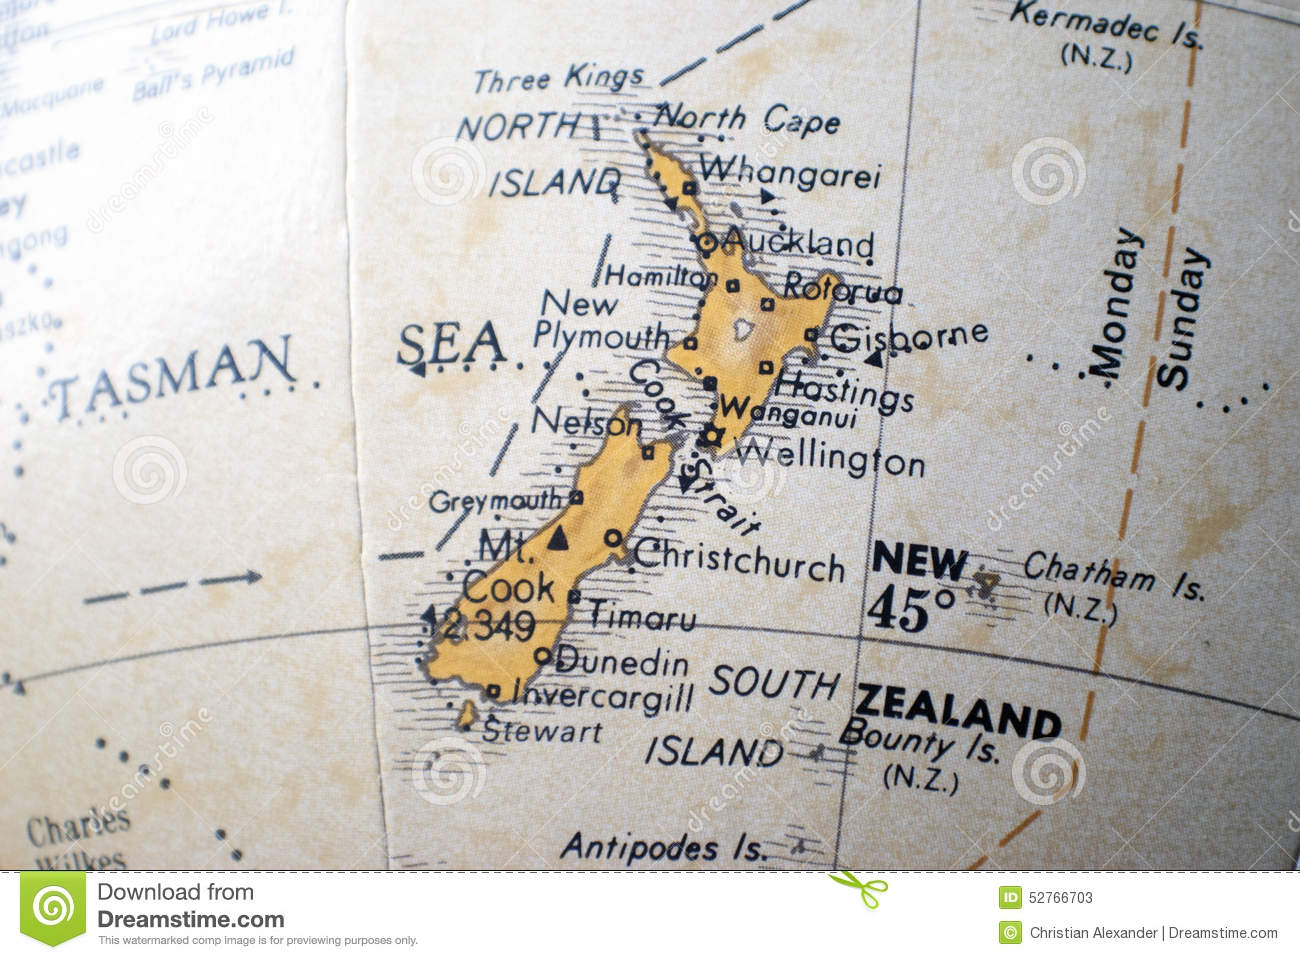 Where Is New Zealand On World Map.Map Of New Zealand On A World Globe Stock Image Image Of Atlas